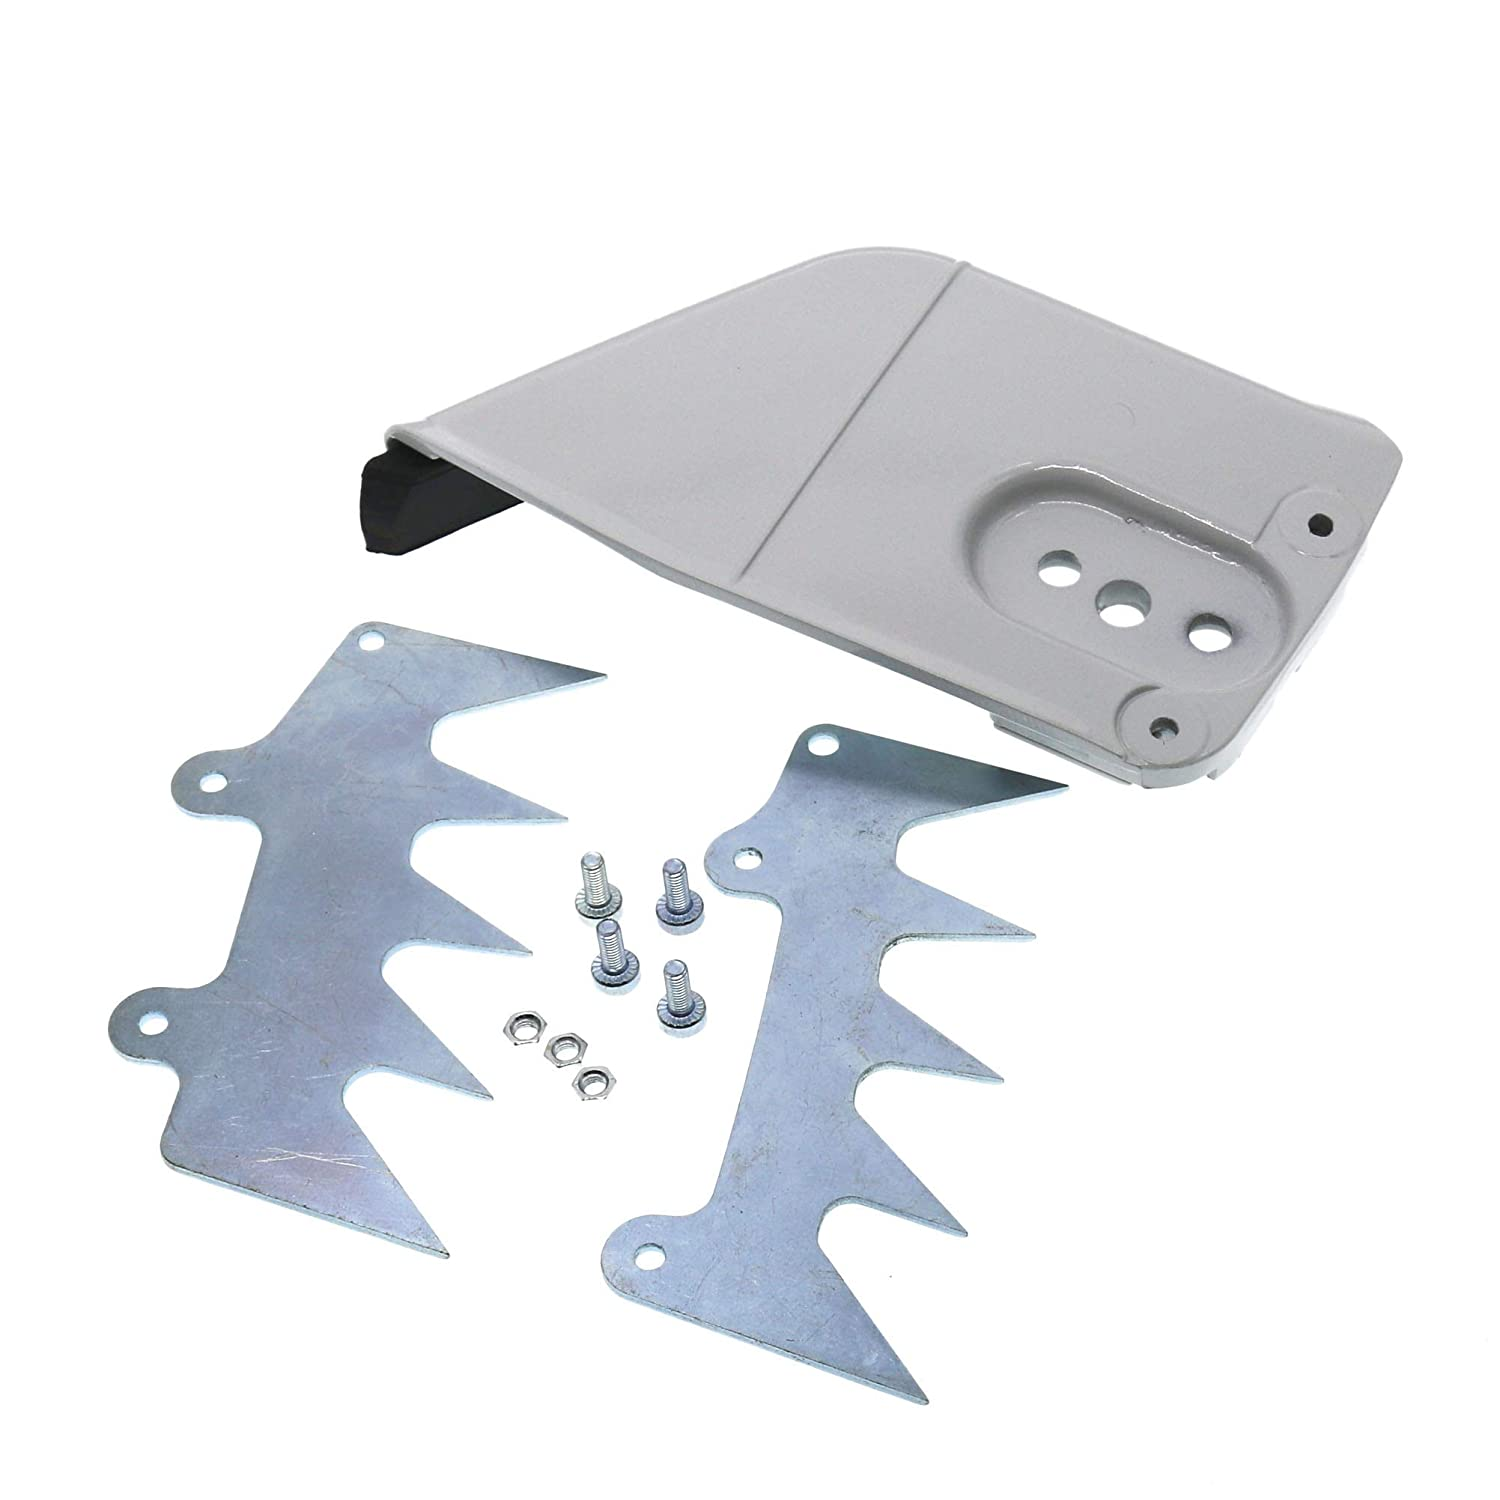 for Stihl MS440 MS460 MS650 MS660 046 064 066 Chainsaw QHALEN Bar Sprocket Clutch Cover Bumper Spike Inner//Outer